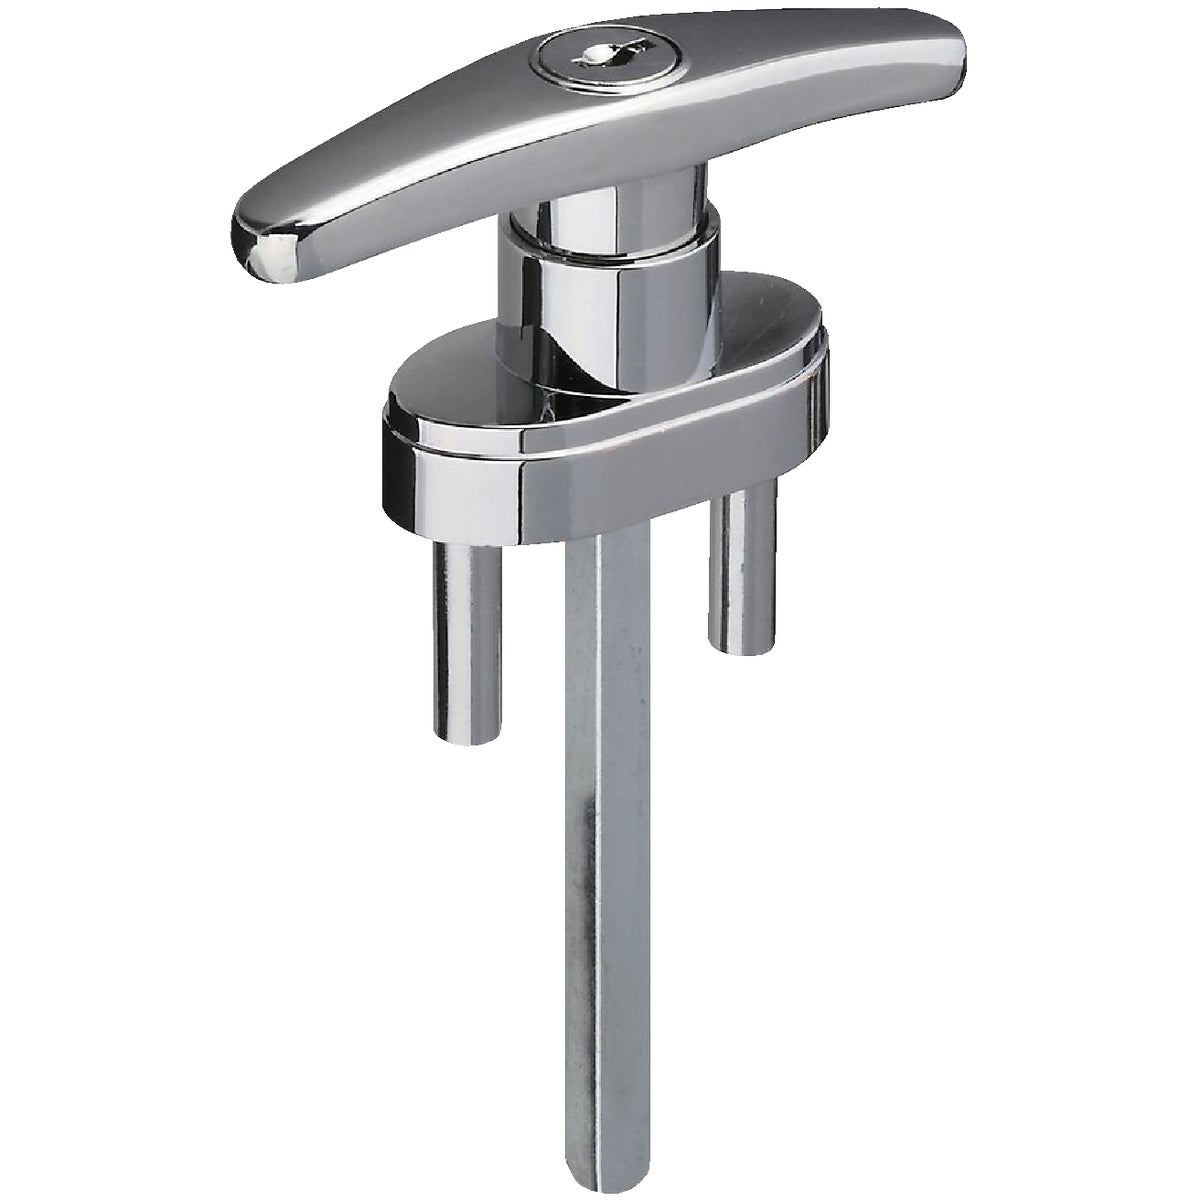 National Mfg. CHROME LOCKING T-HANDLE N280677